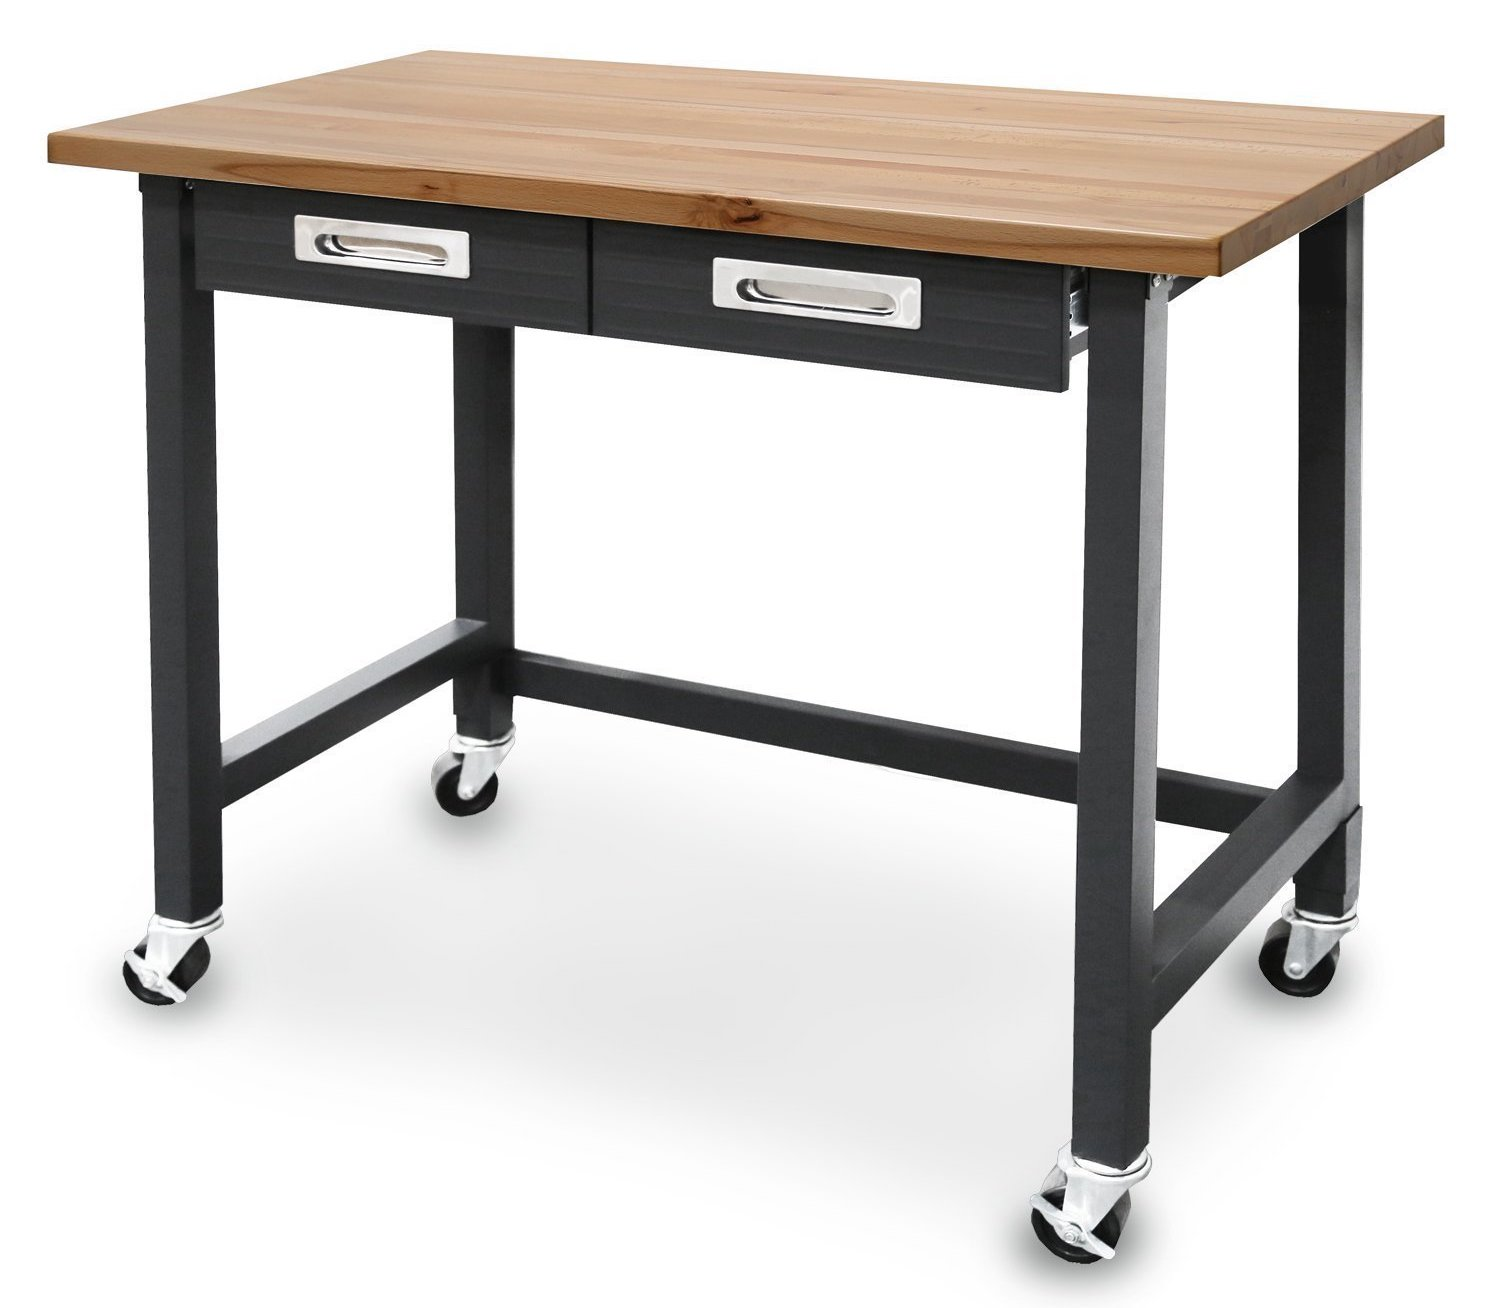 Top 5 Best Woodworking Workbench For Sale Review